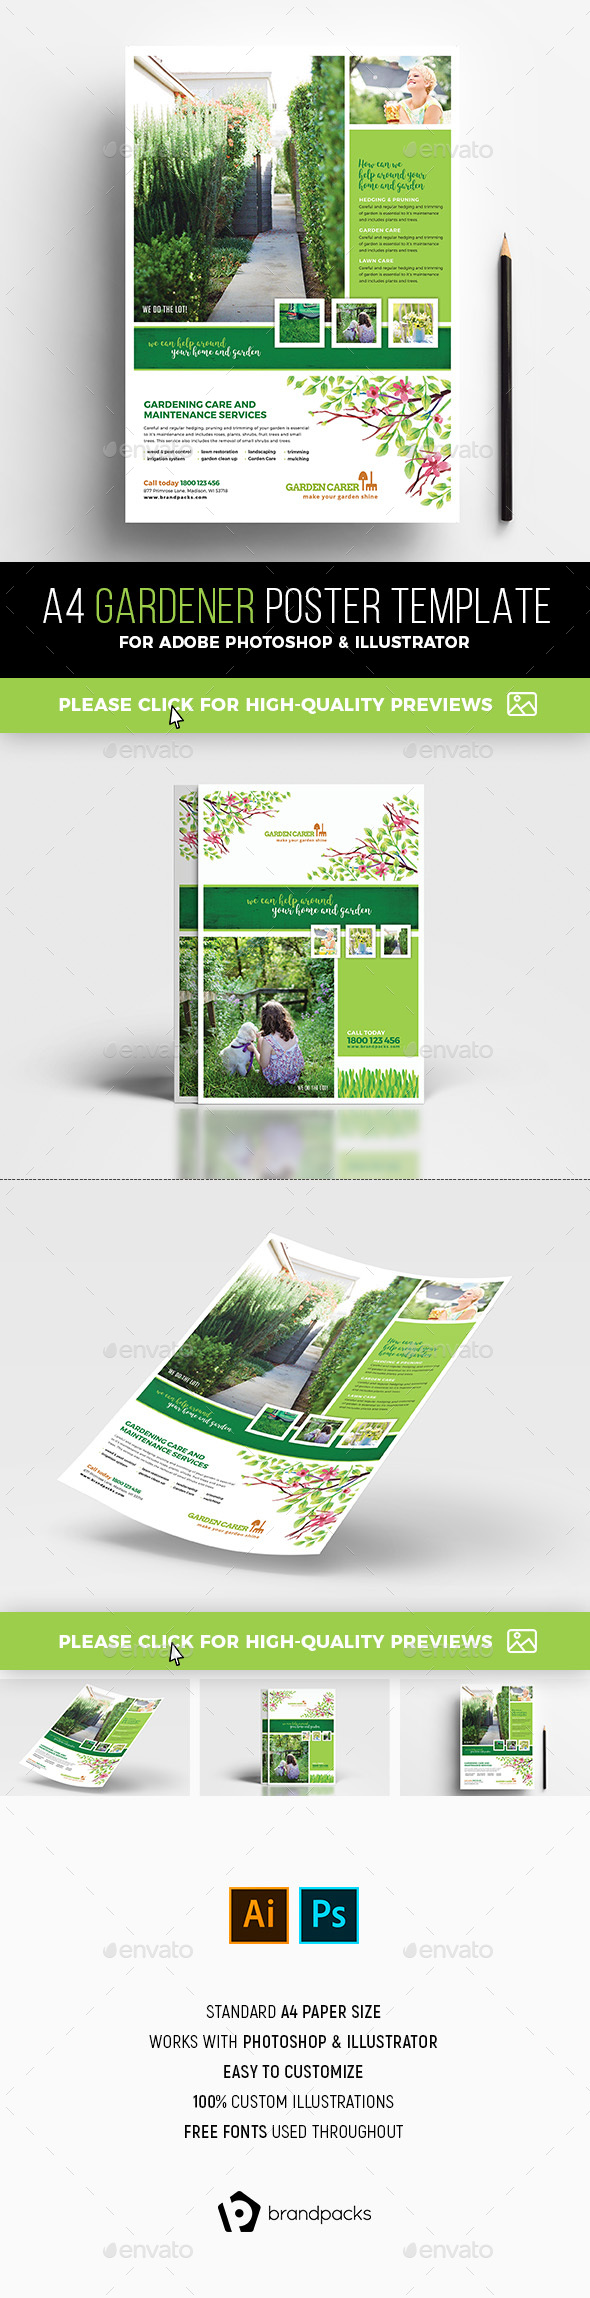 A4 Gardener Poster / Advertisement Template - Corporate Flyers